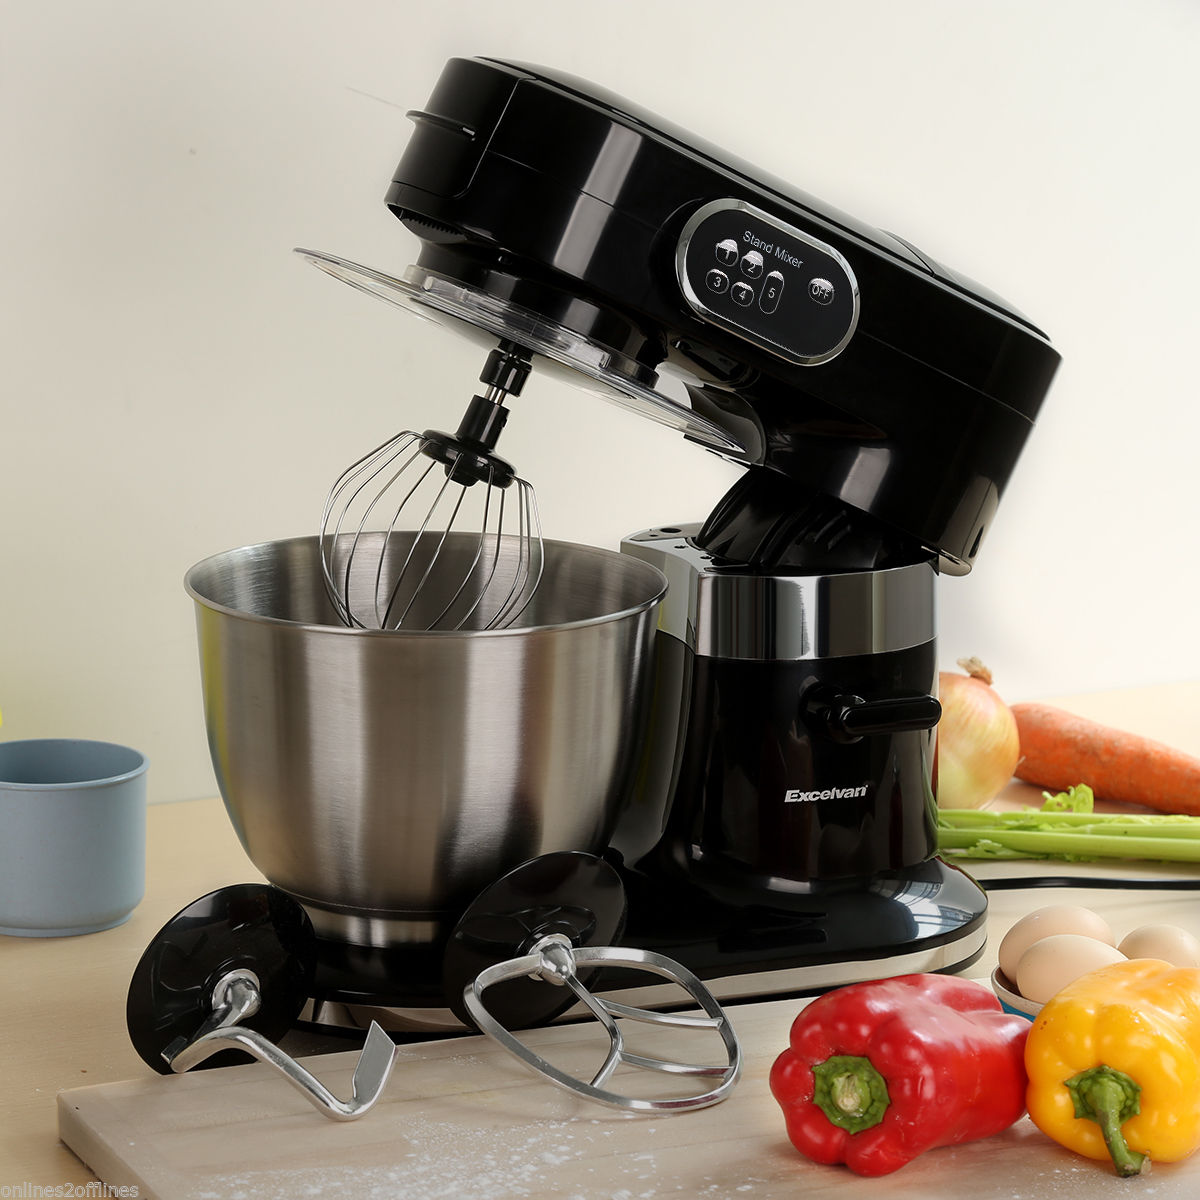 1000W 5.5L Electrical Meals Stand Mixer Kitchen Machine Blender + Beater/Hook/Whisk